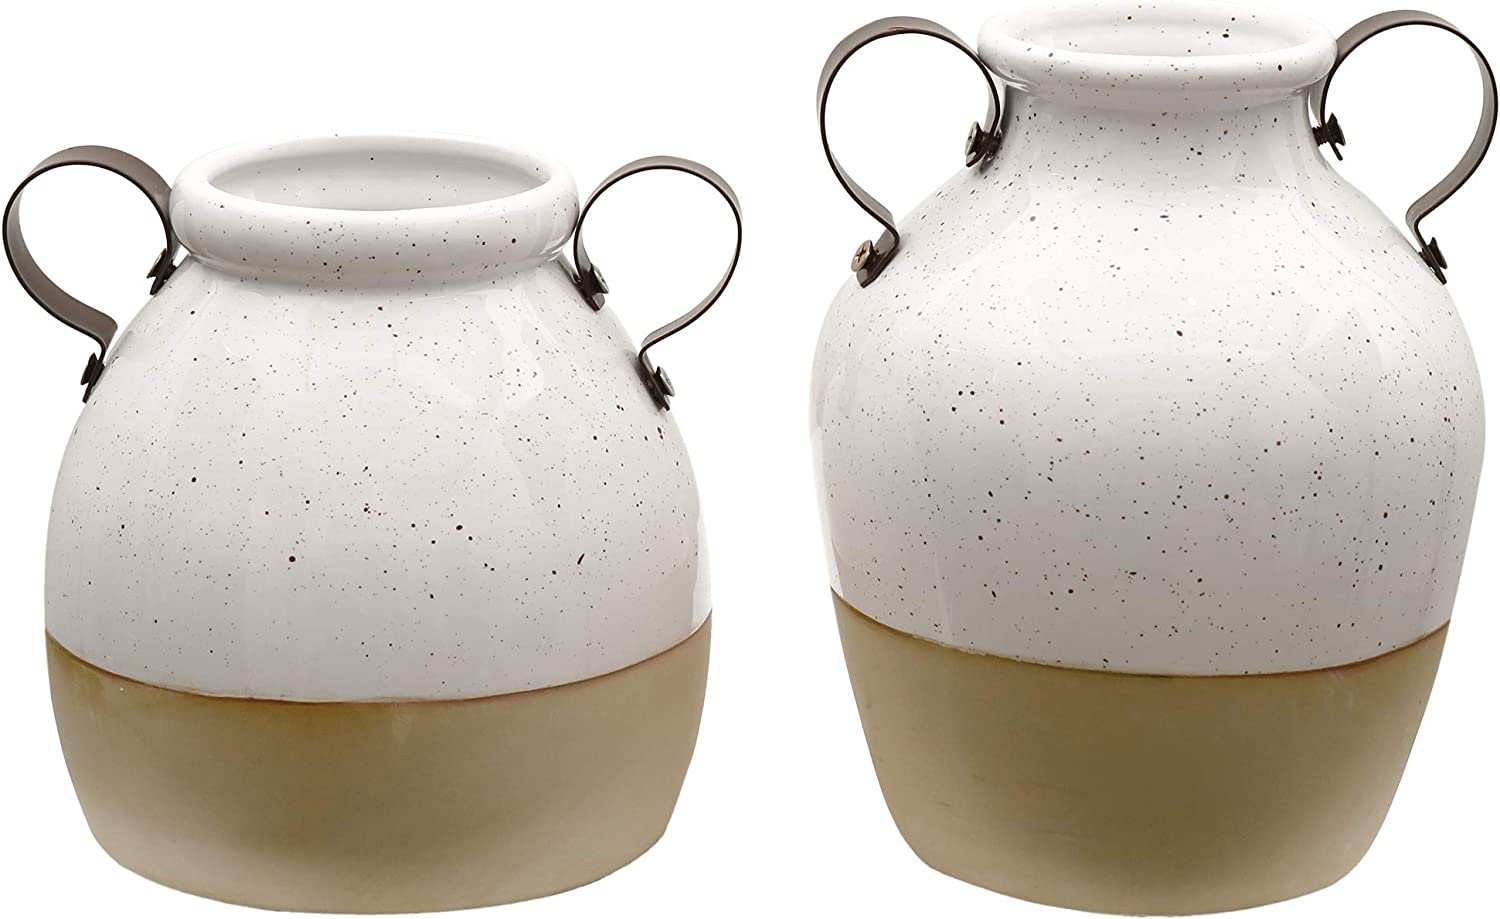 Handmade Porcelain with Cylinder Frosted Effect and Mental Handle for Home Decor H16//20cm, White and Khaki TERESAS COLLECTIONS Ceramic Vase Set for Flowers